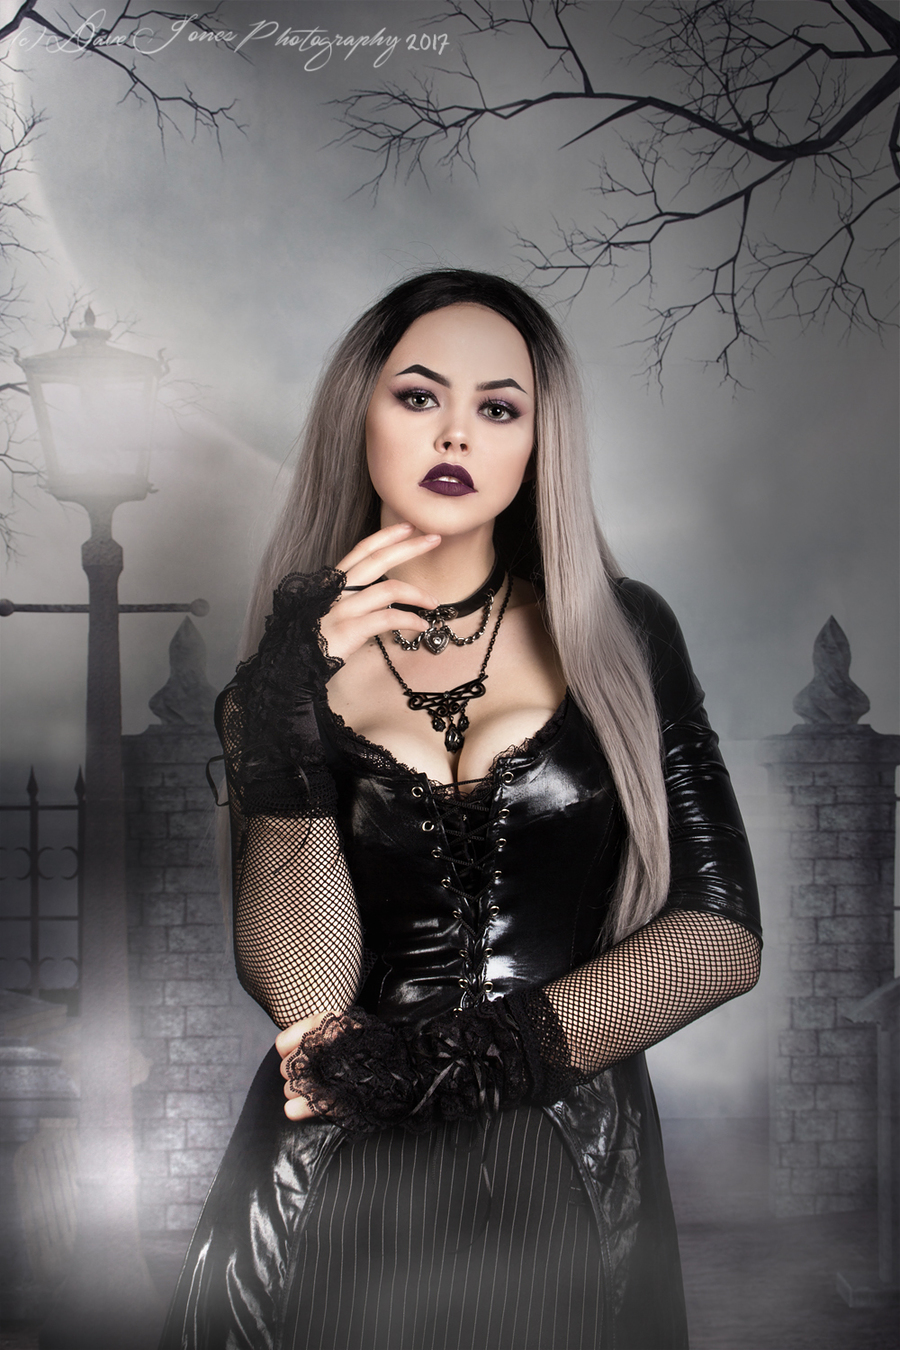 GothBaby / Photography by Dave Jones Photography, Model GothBaby, Taken at Hope Photographic / Uploaded 1st July 2017 @ 04:38 PM